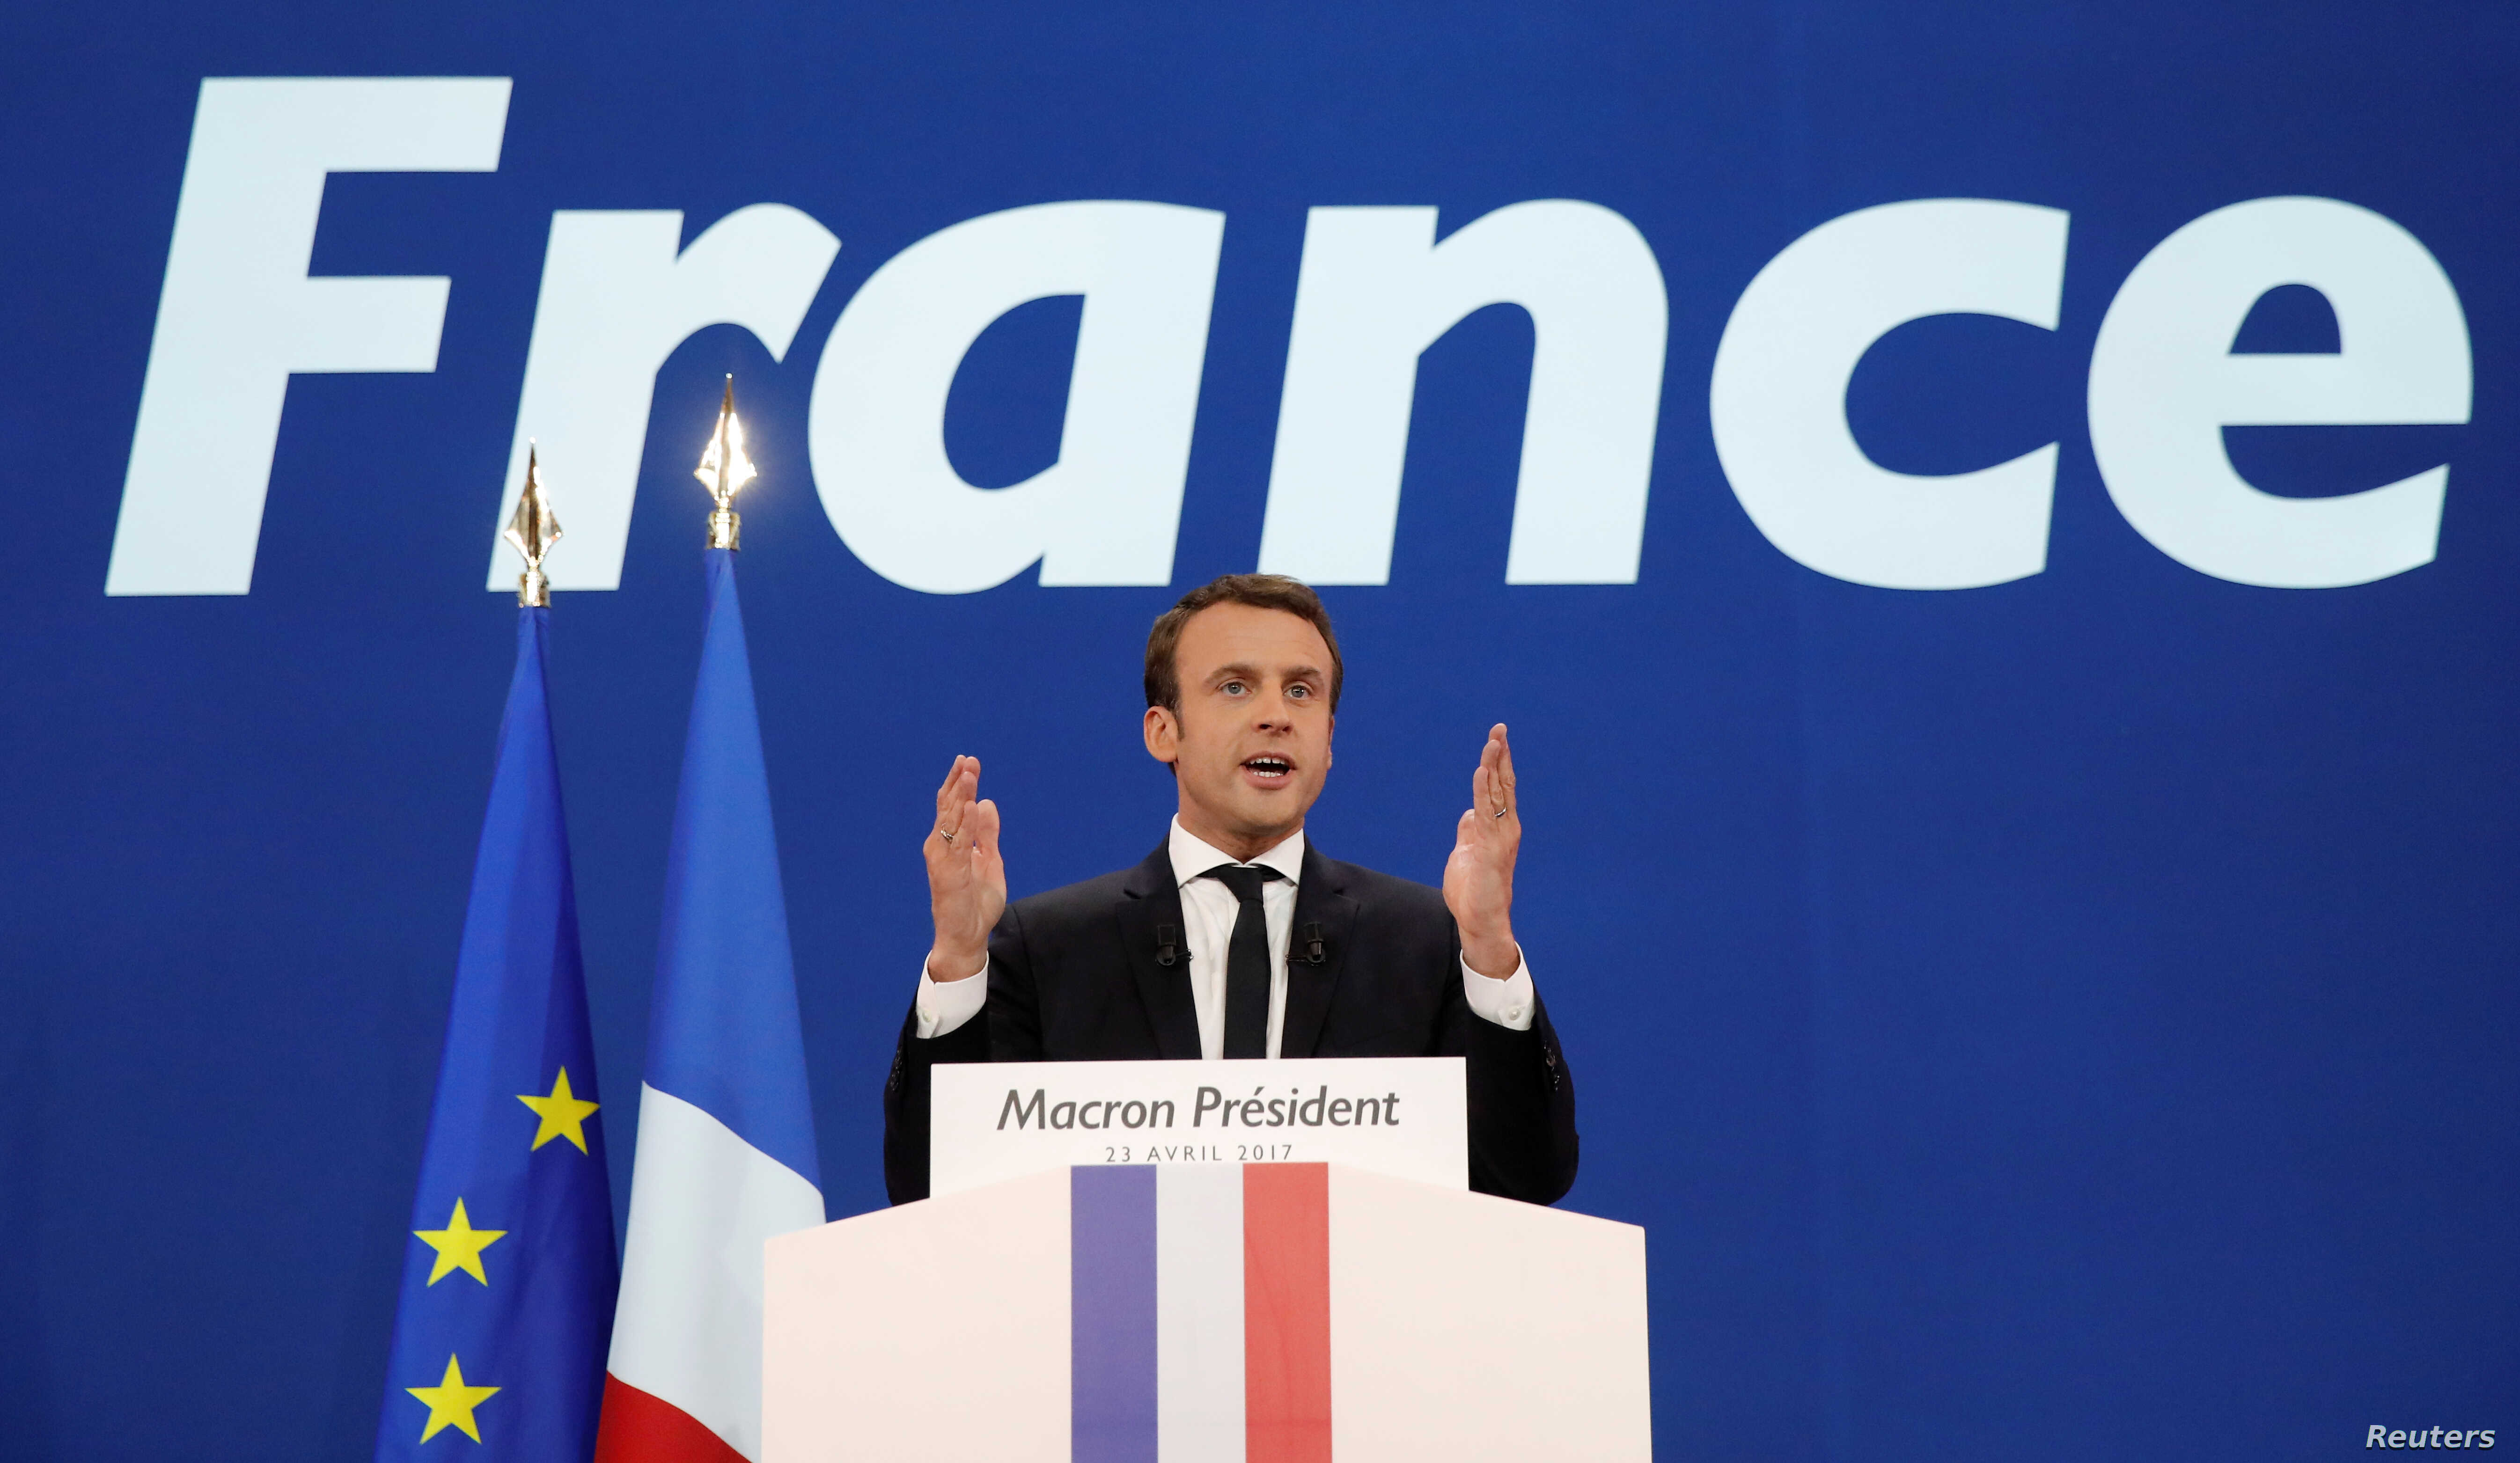 Emmanuel Macron, head of the political movement En Marche !, or Onwards !, and candidate for the 2017 French presidential election, gestures to supporters after the first round of 2017 French presidential election in Paris, April 23, 2017.